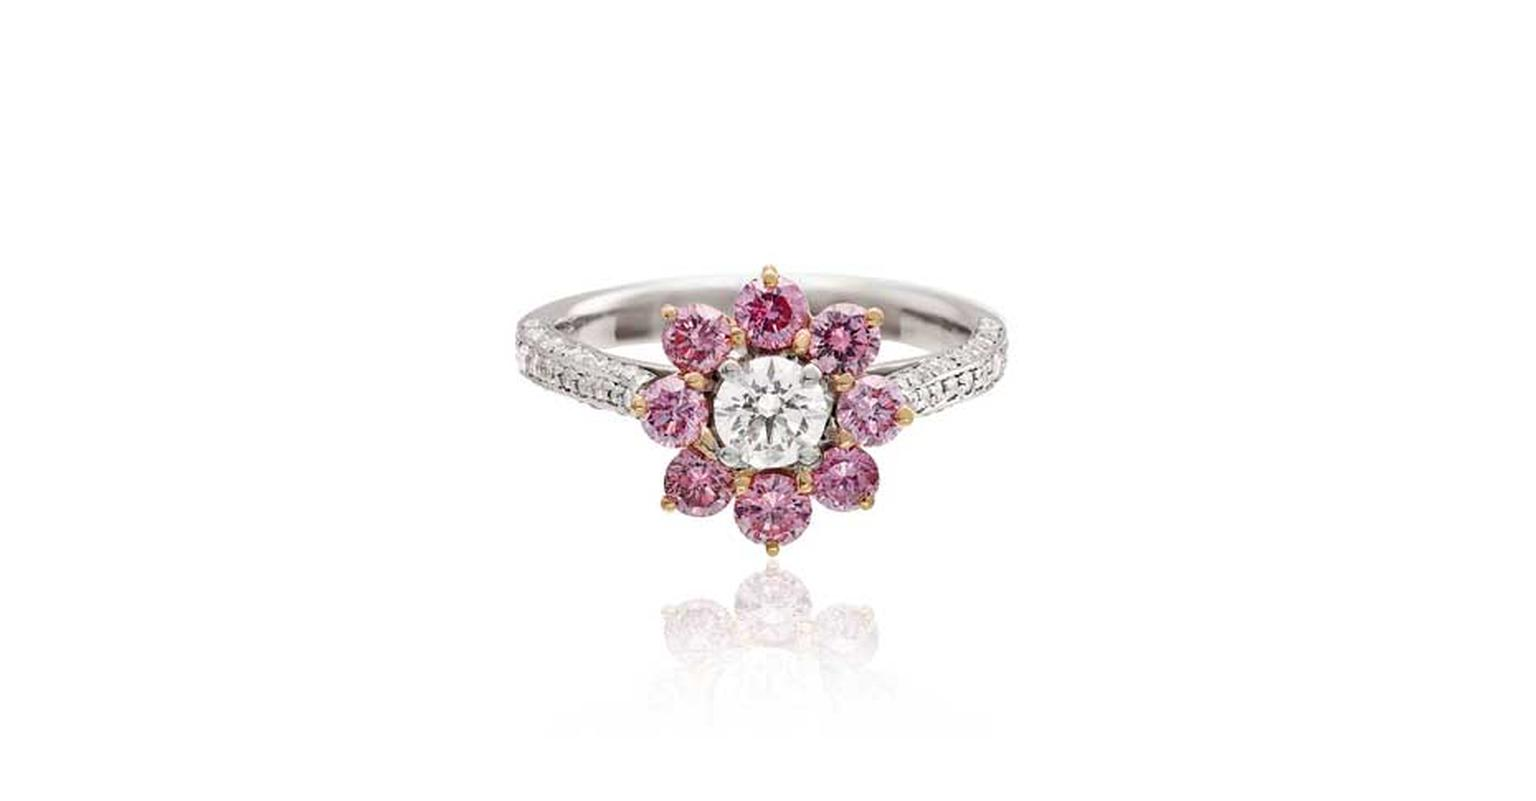 Linneys Argyle pink diamond ring in platinum and rose gold with white diamonds, available at www.linneys.com.au.